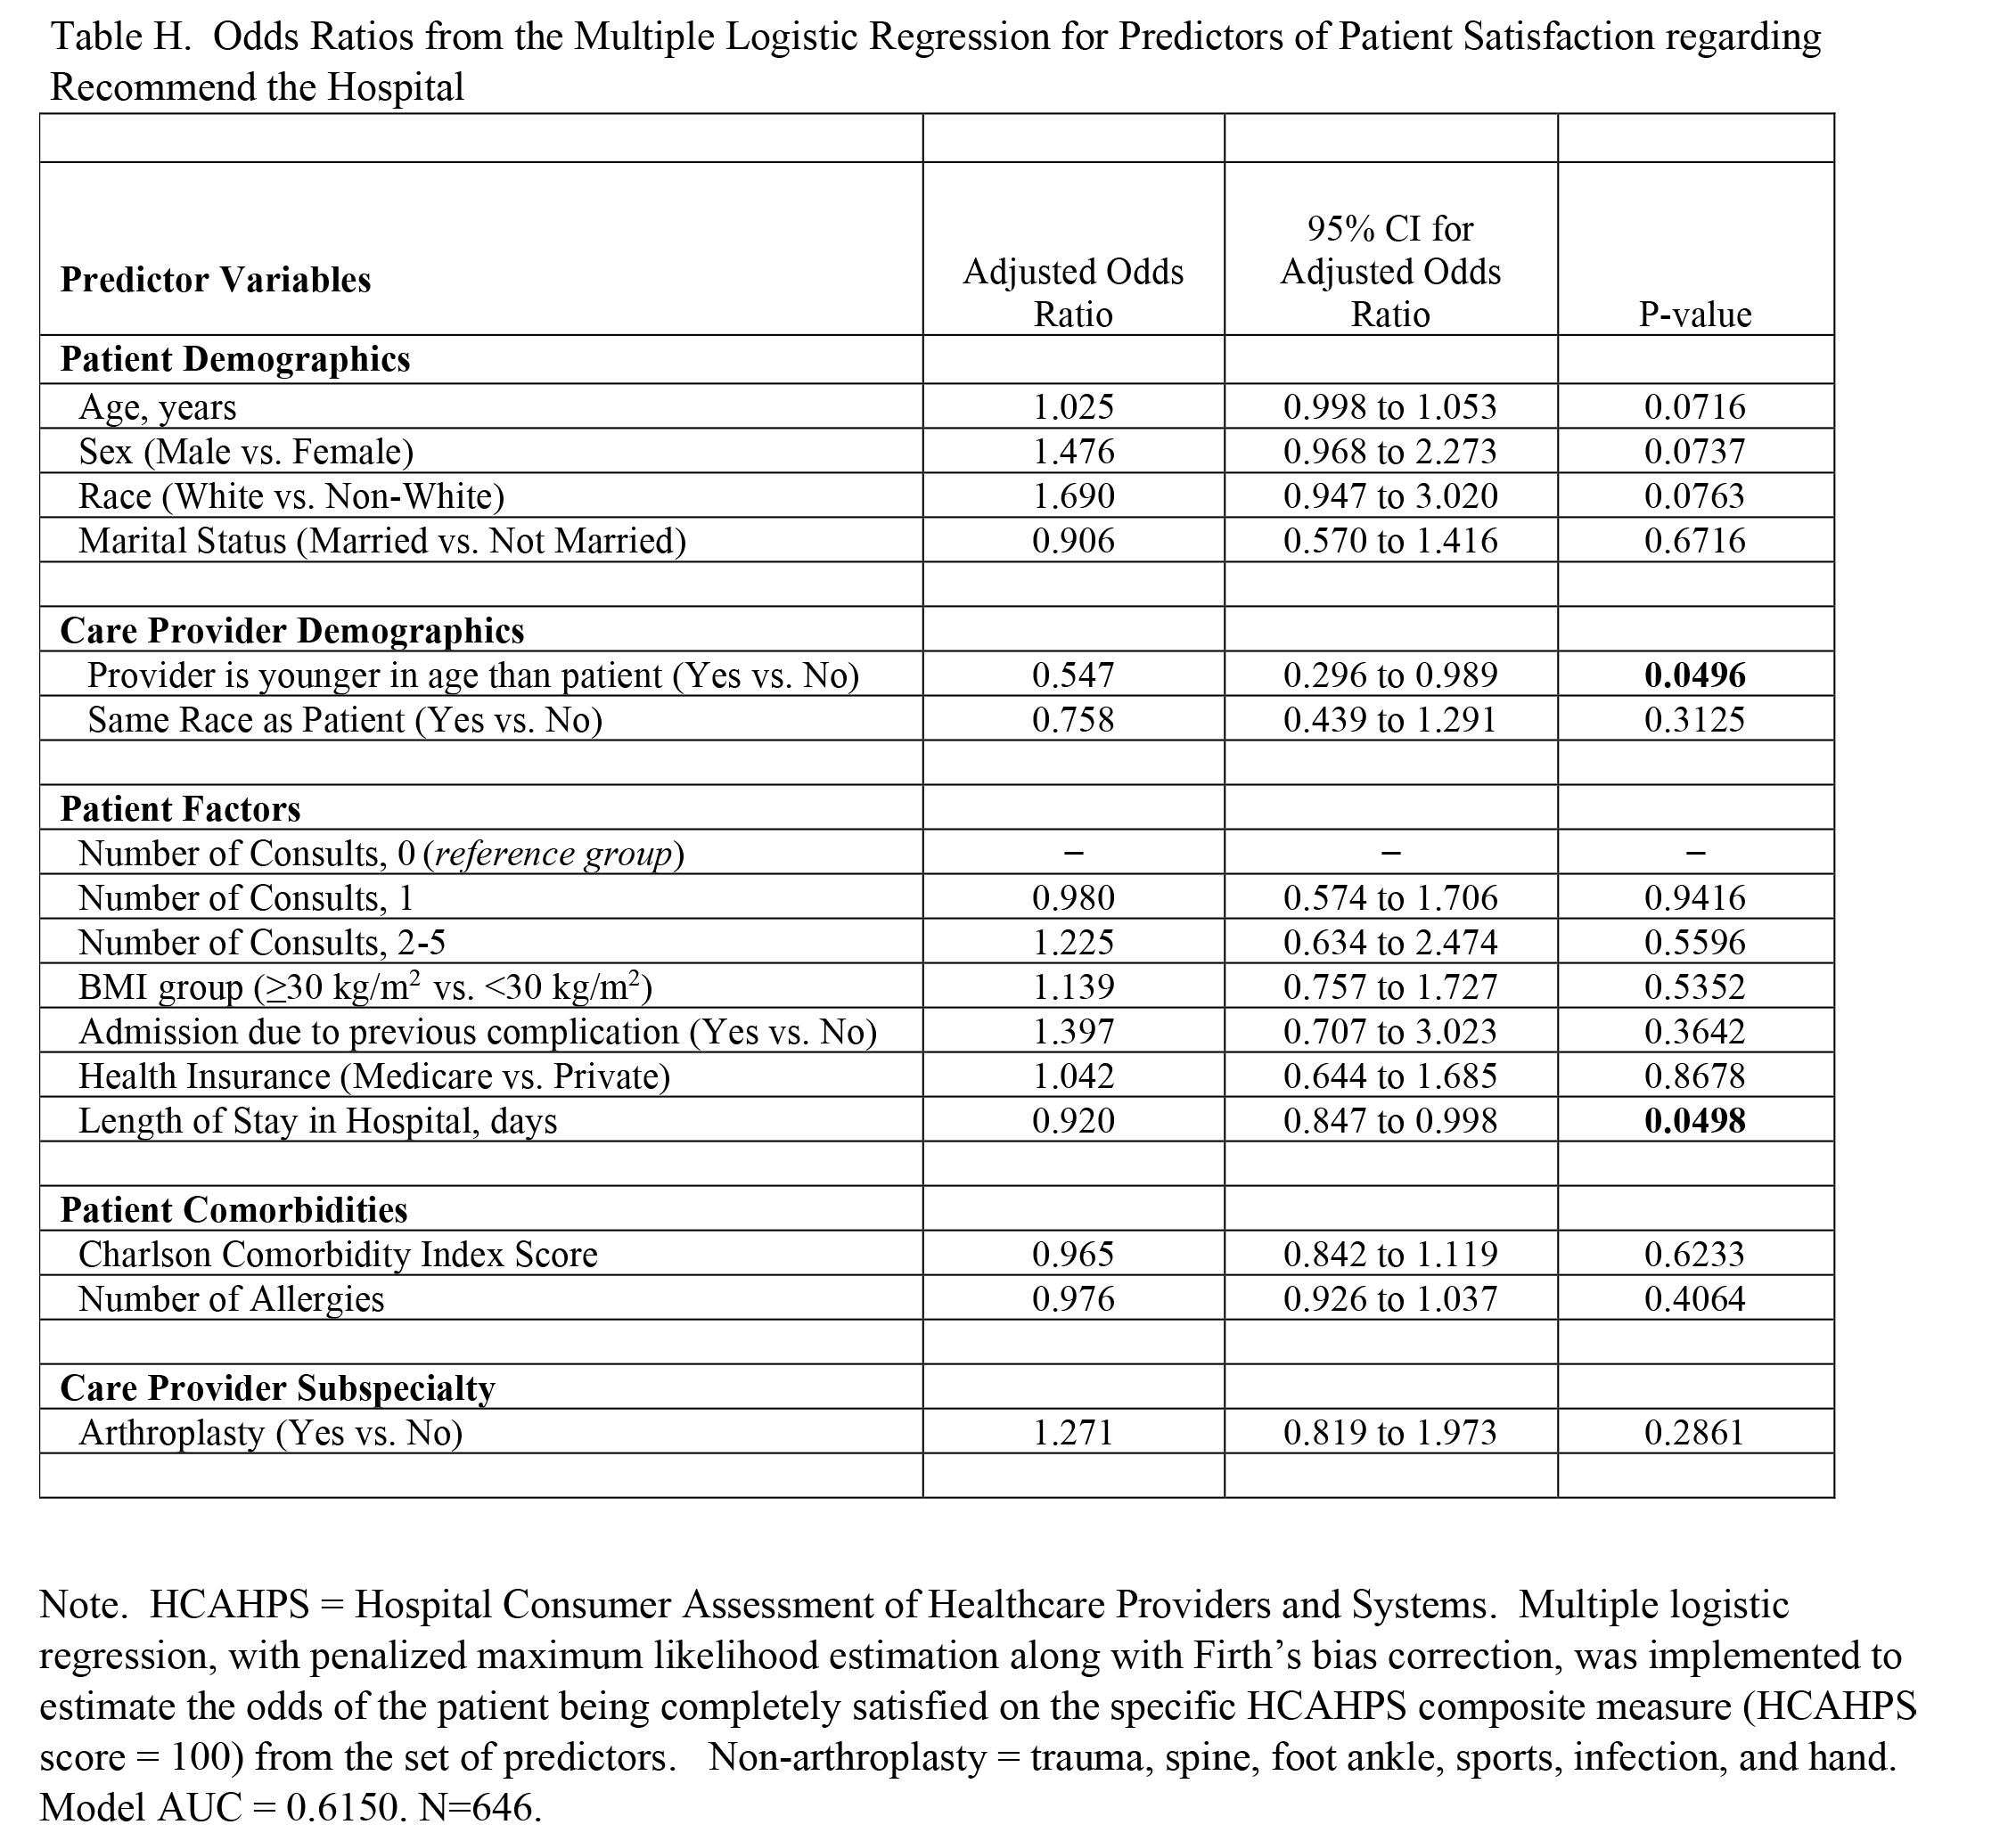 Odds Ratios from the Multiple Logistic Regression for Predictors of Patient Satisfaction regarding Recommend the Hospital